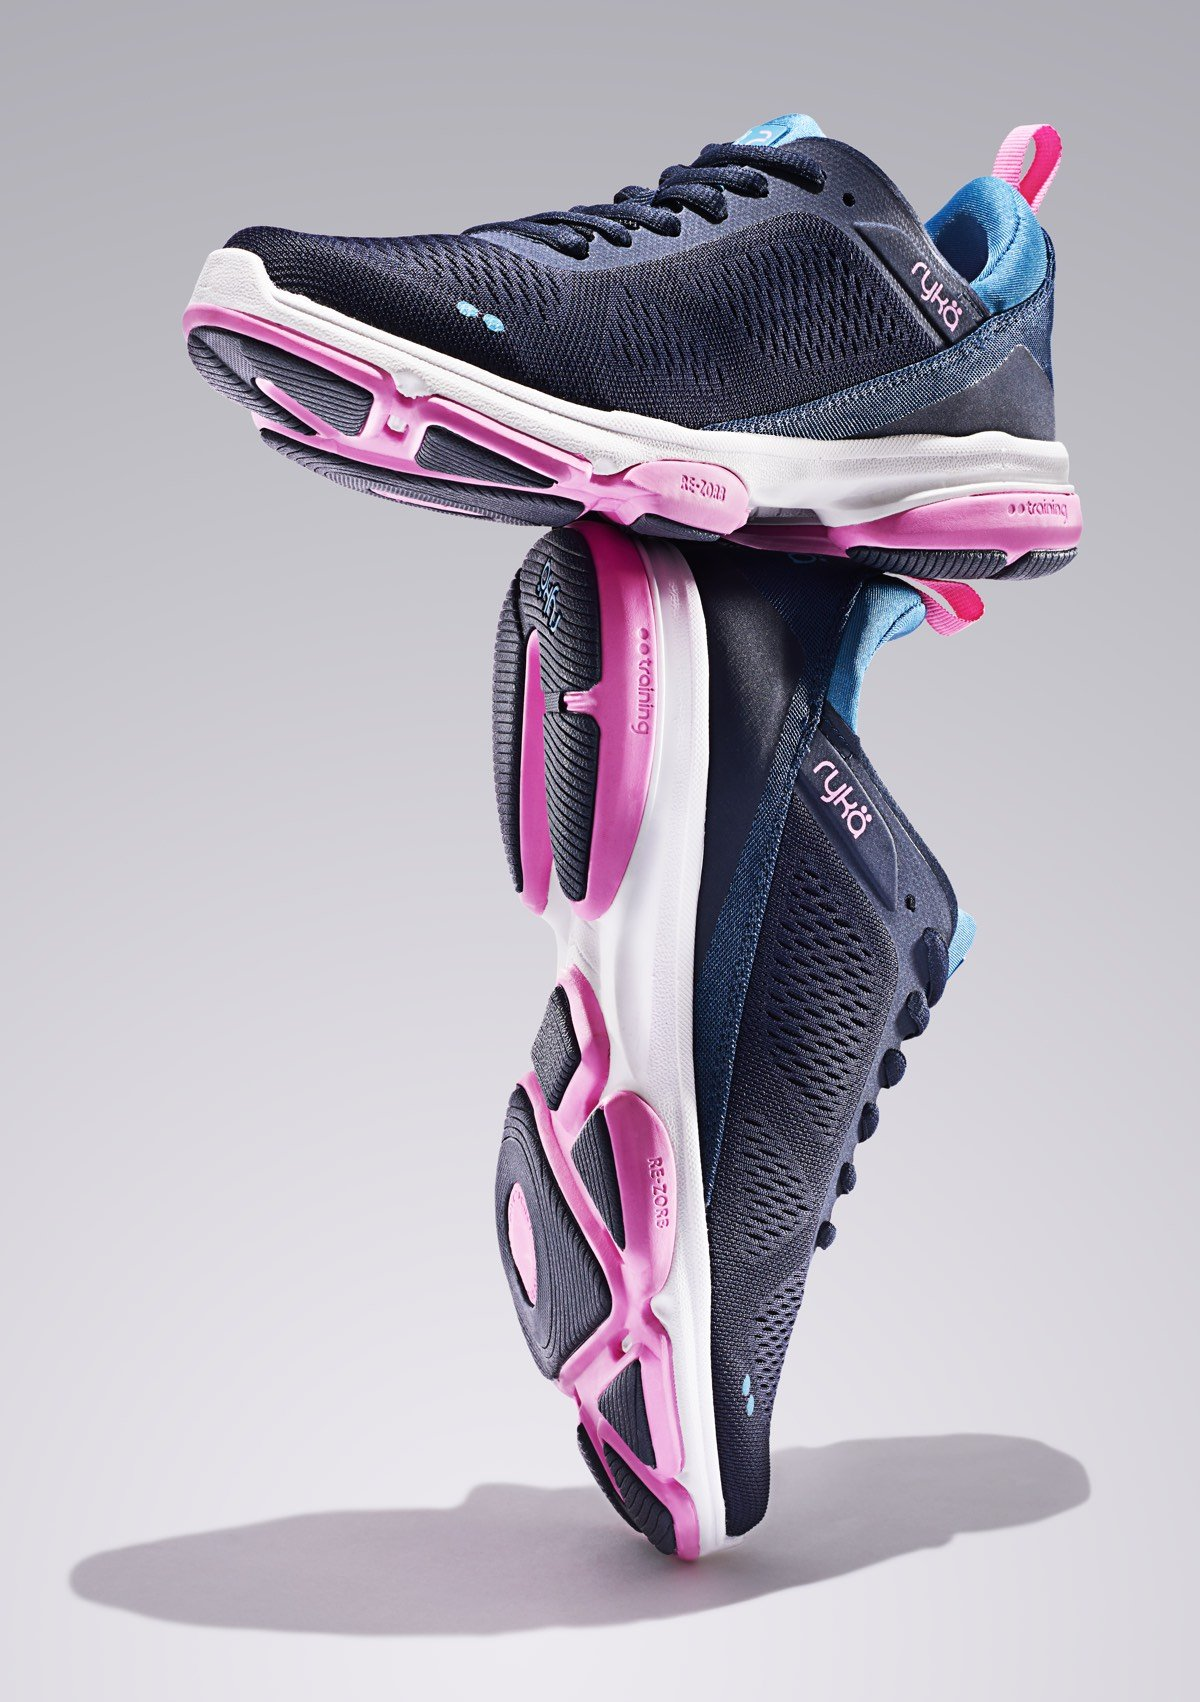 Propel your workout with a NEW update to our fan-favorite, award-winning Devotion XT training shoe.